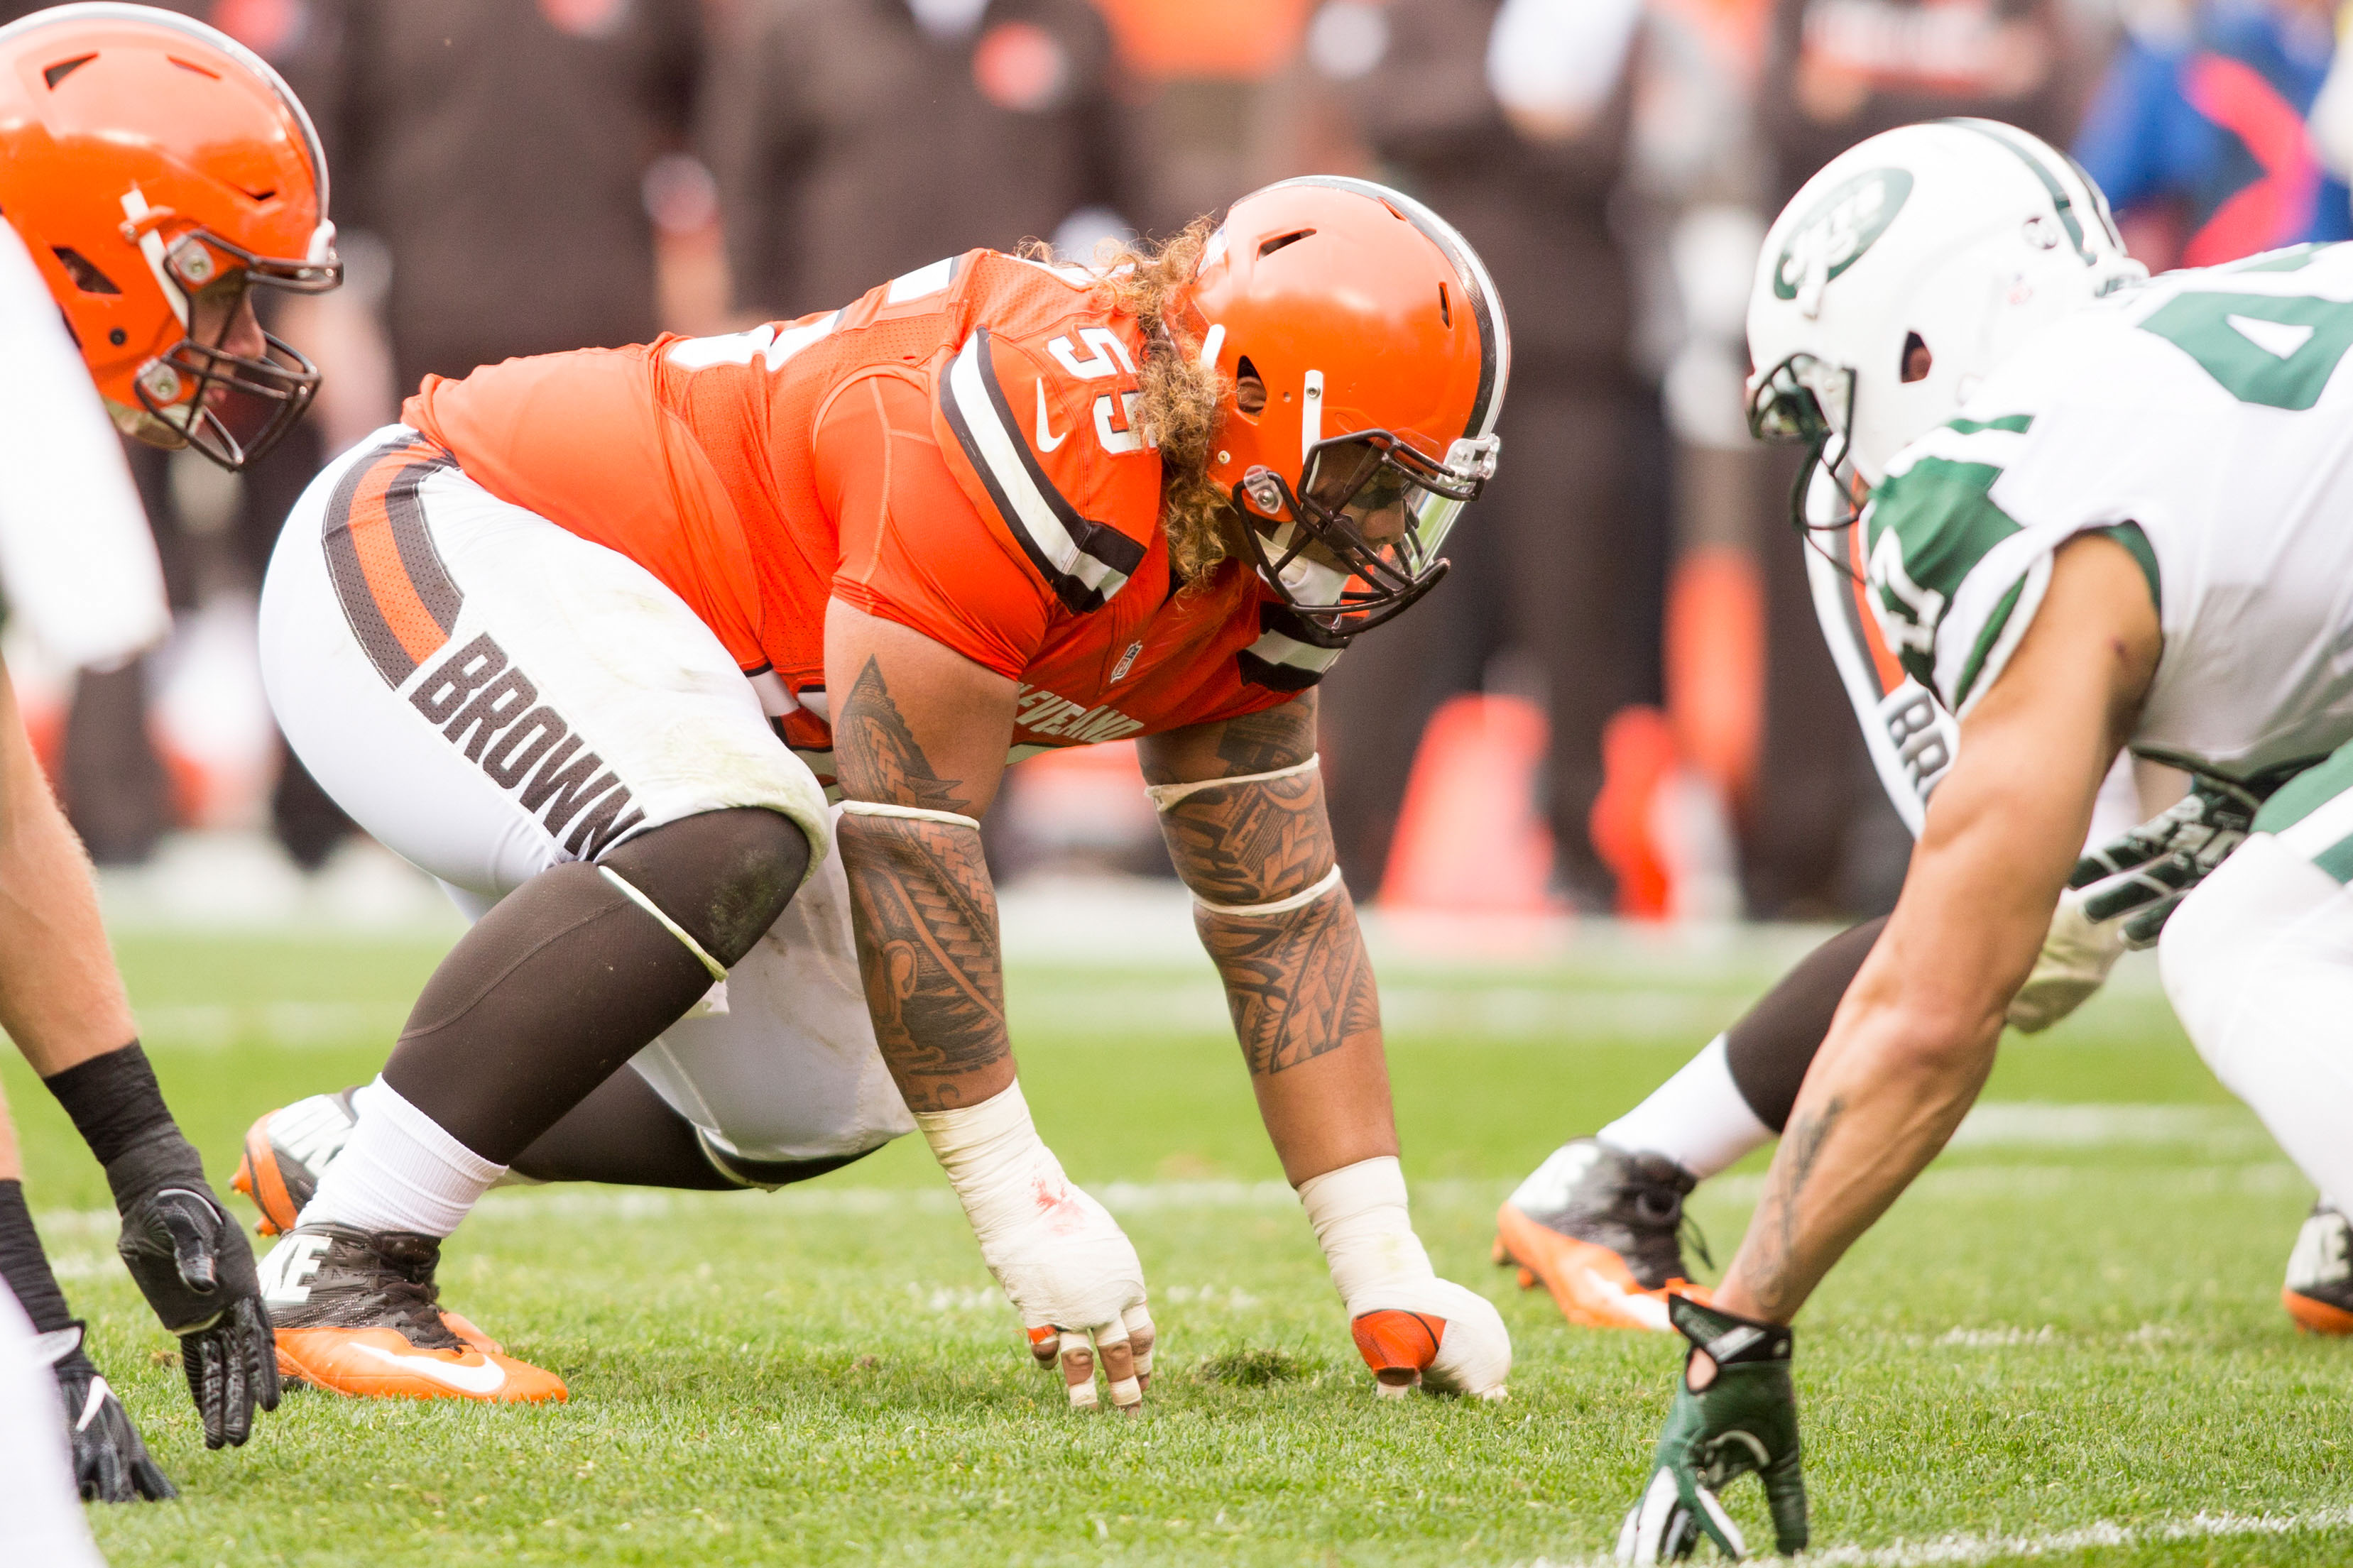 9736187-nfl-new-york-jets-at-cleveland-browns